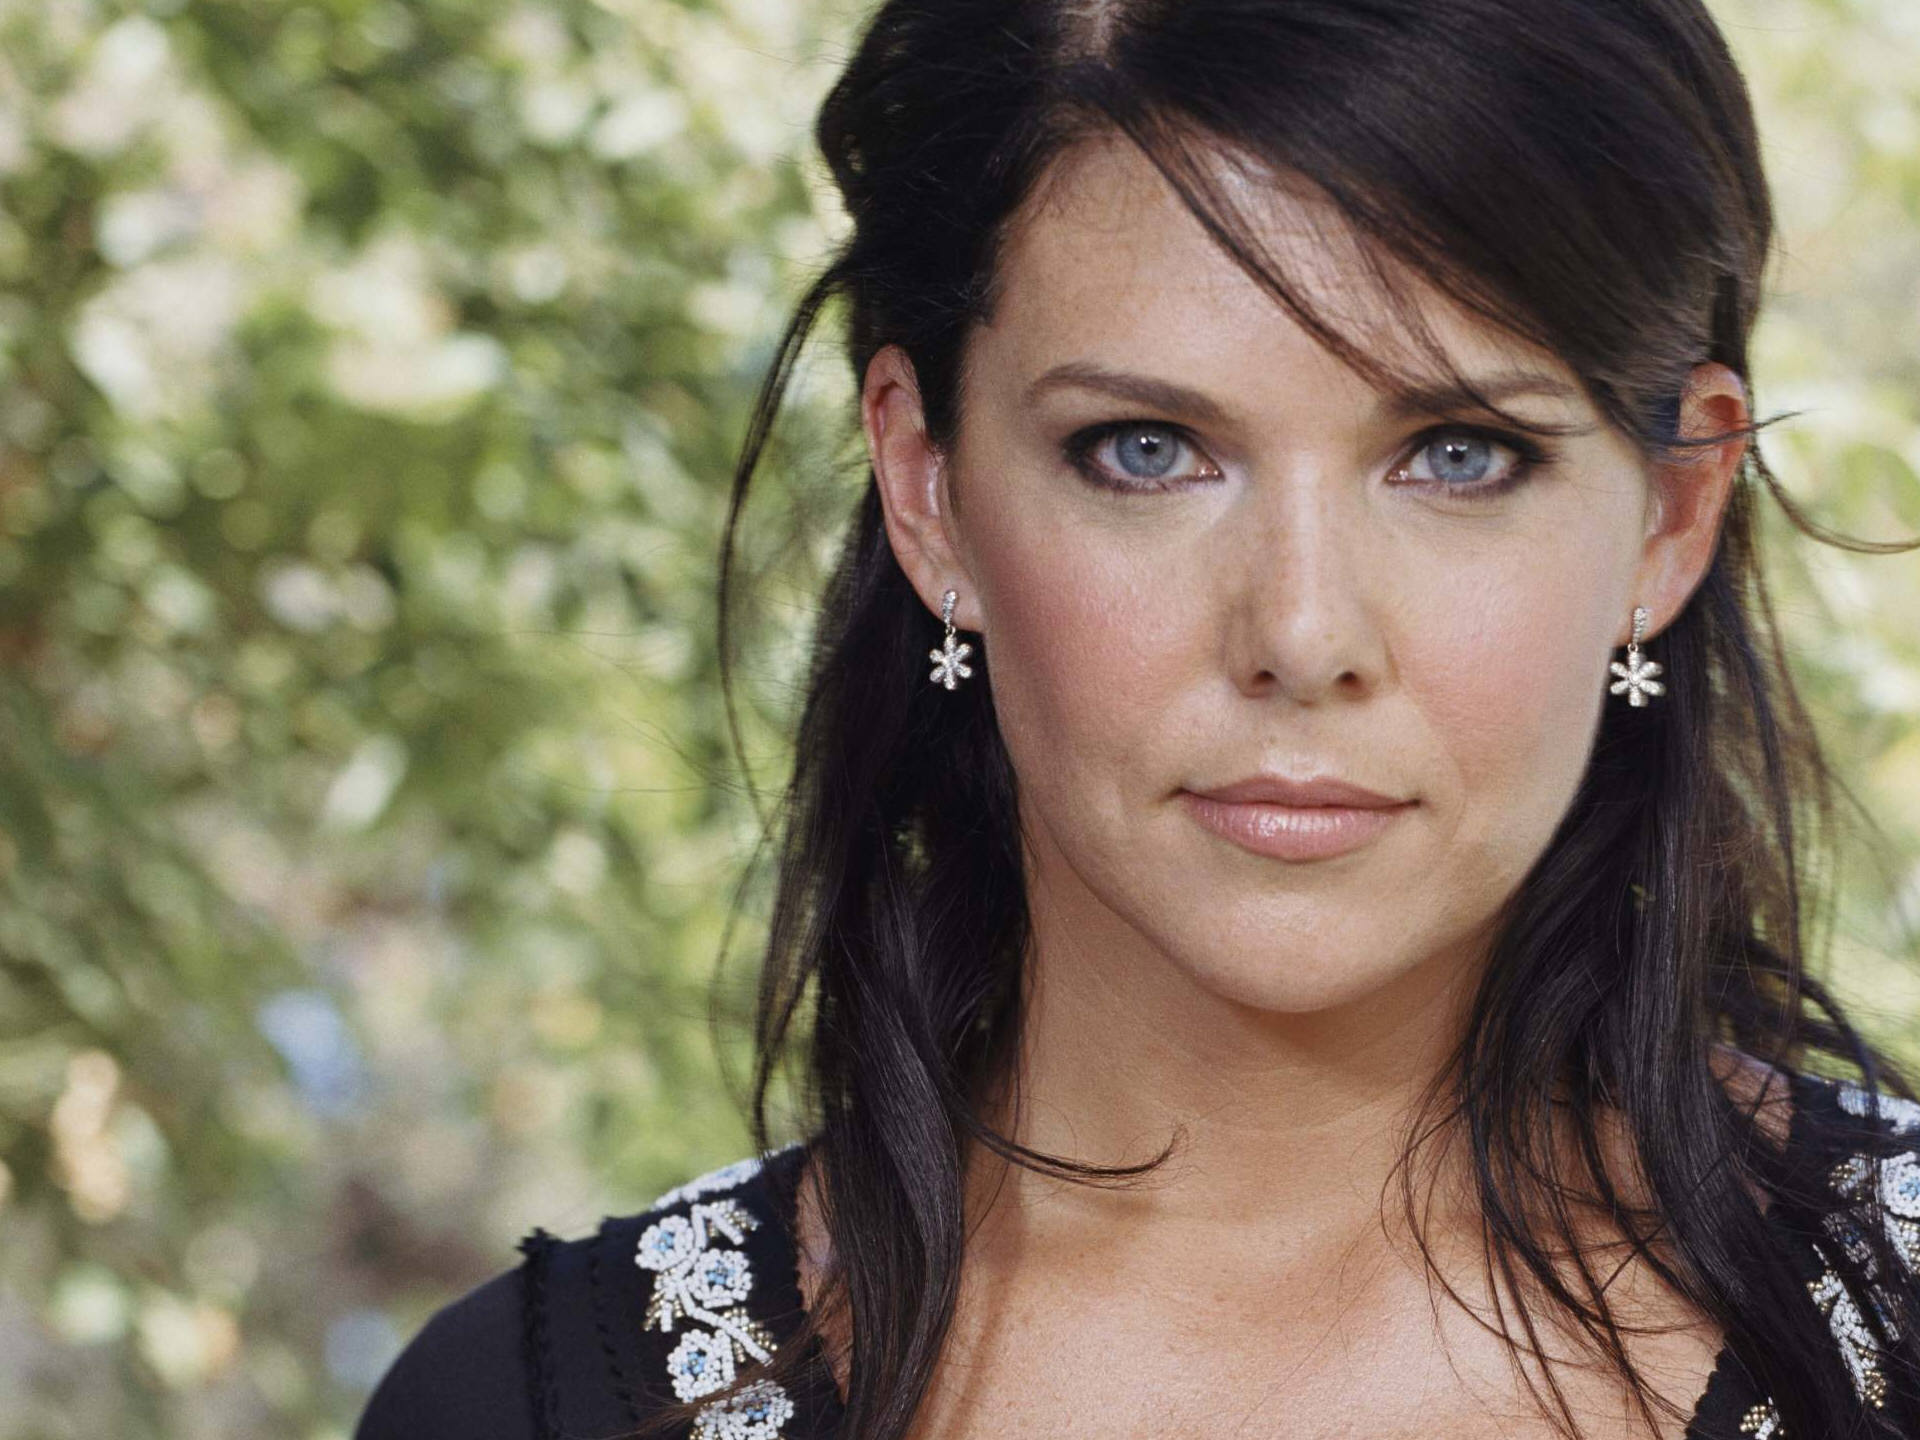 lauren graham wallpapers high quality download free